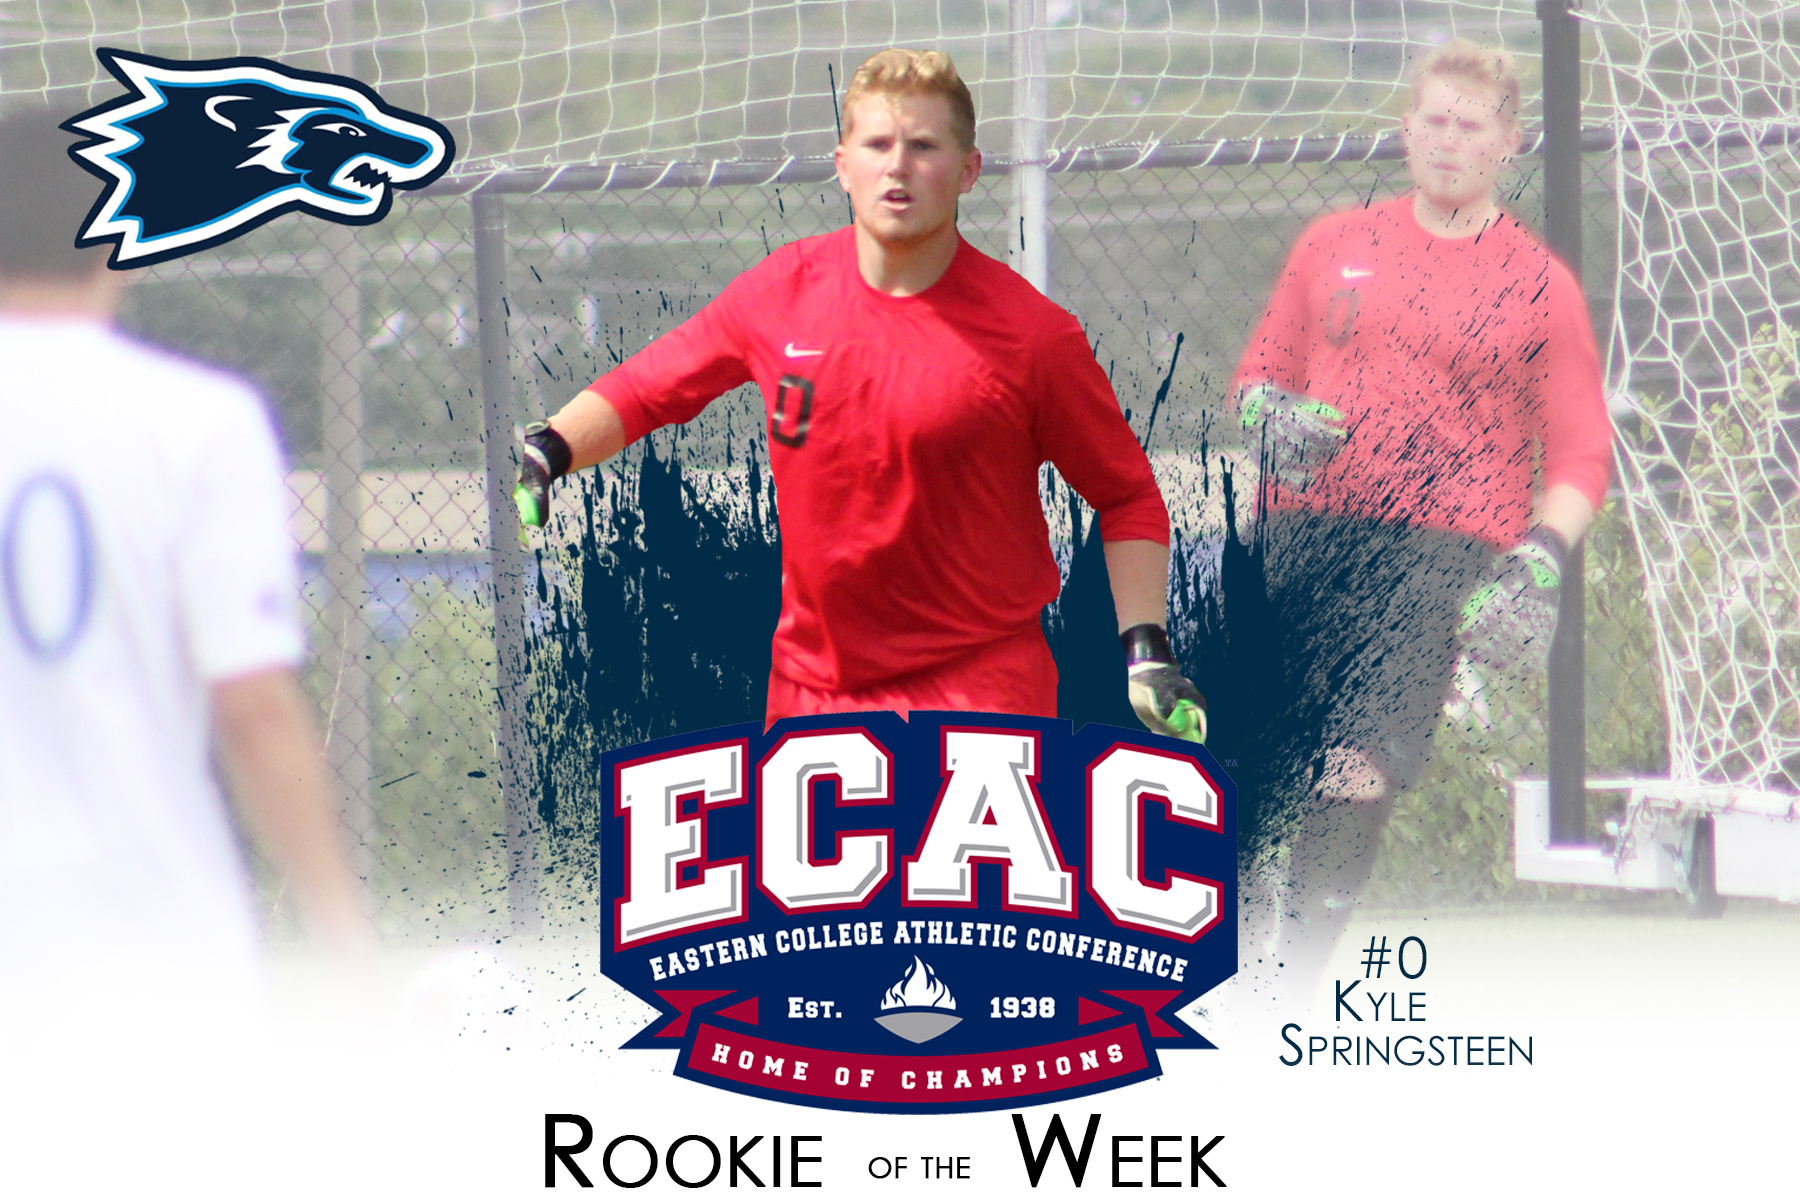 Springsteen Named ECAC Rookie of the Week